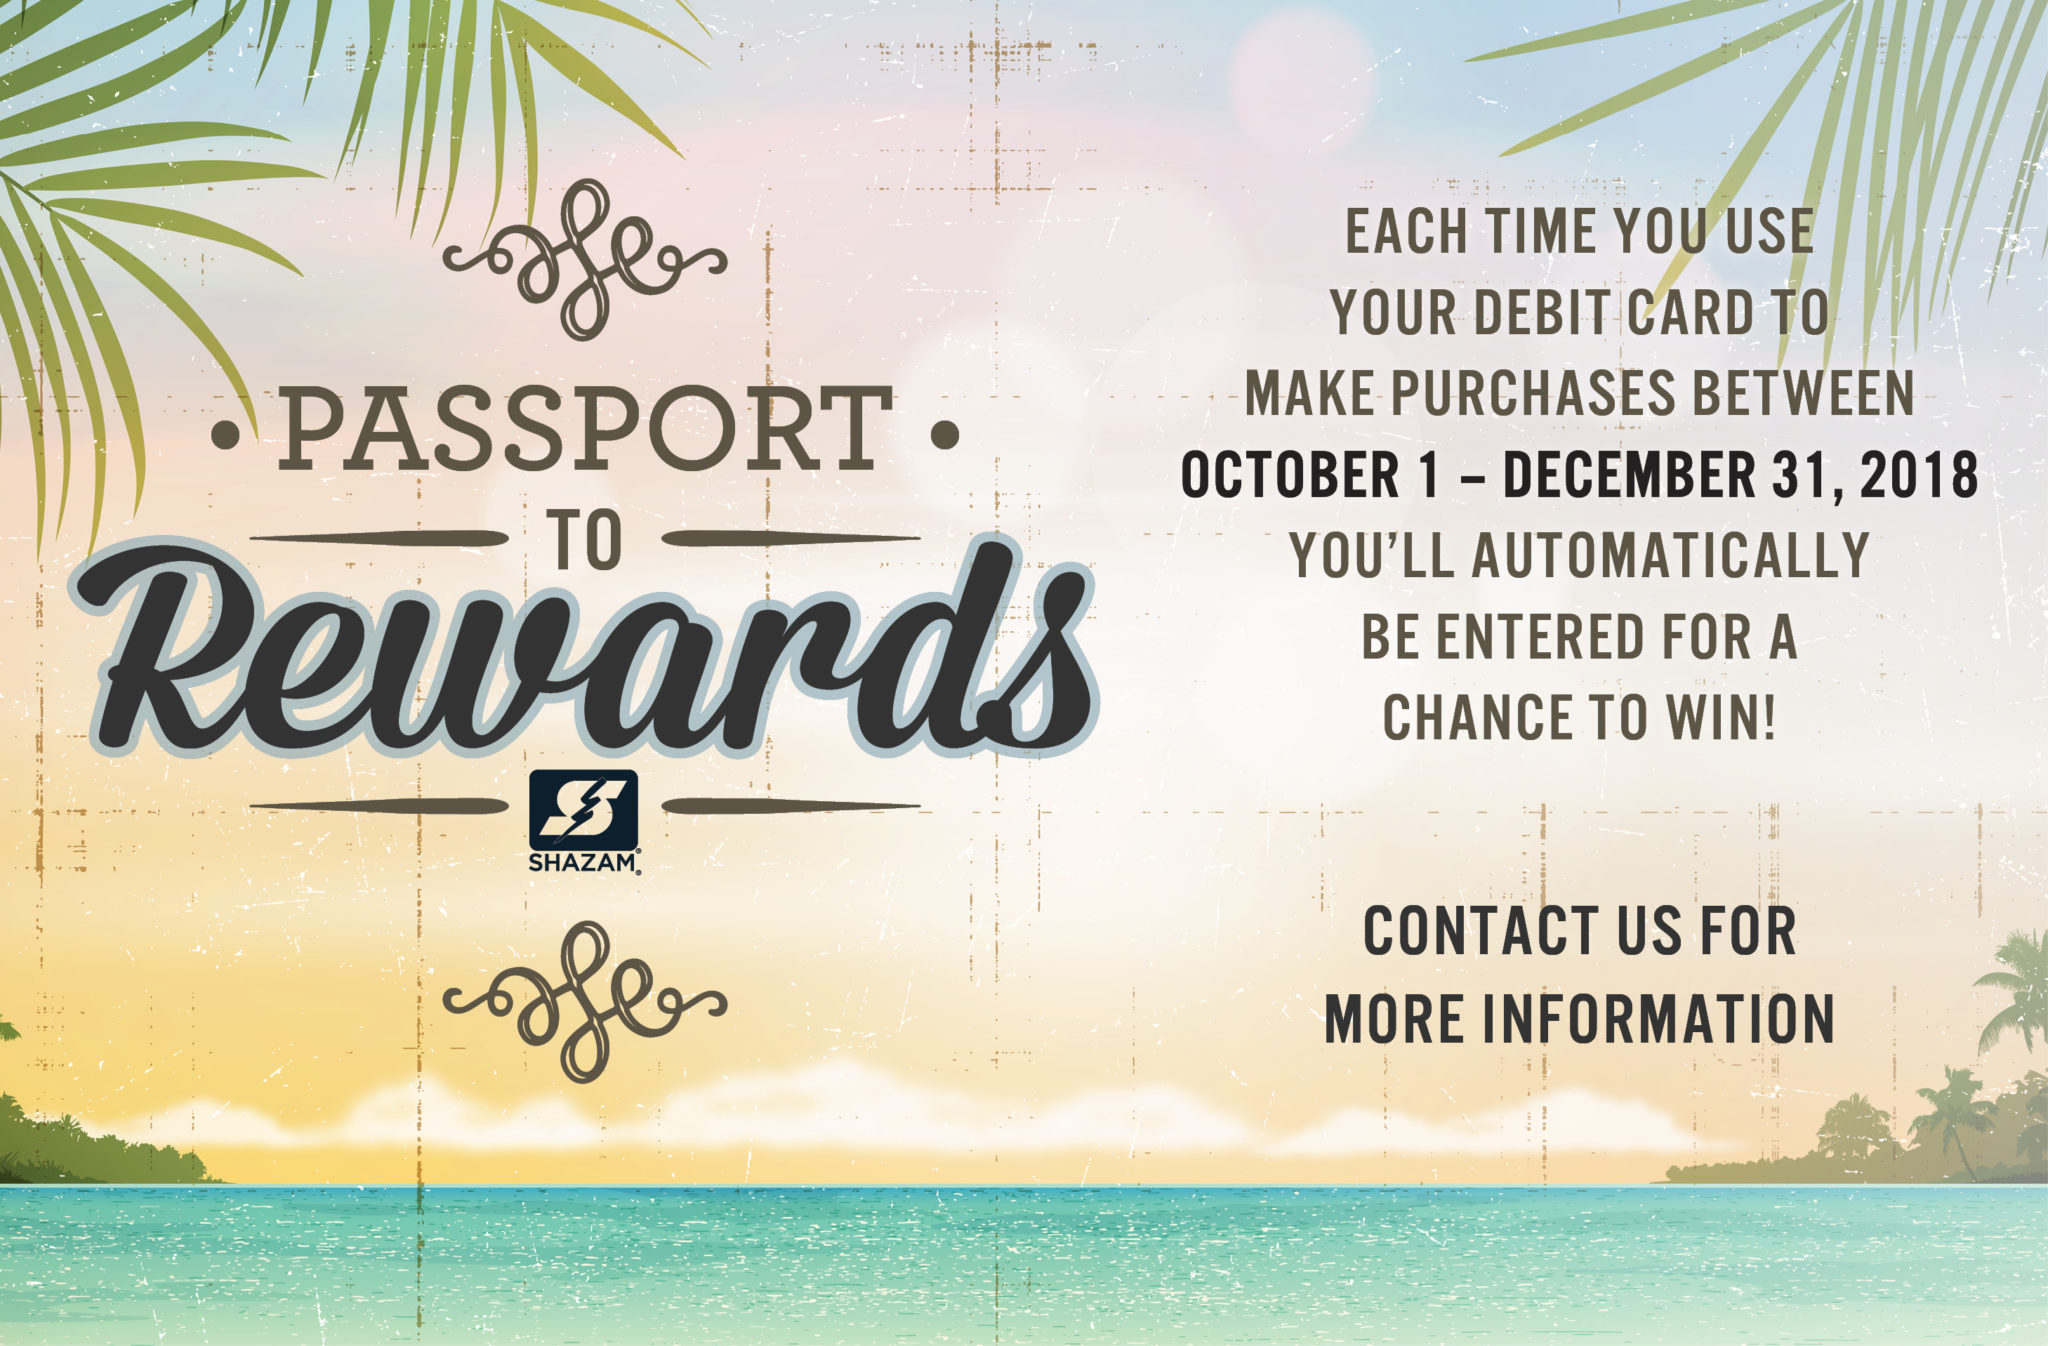 Shazam Passport to rewards